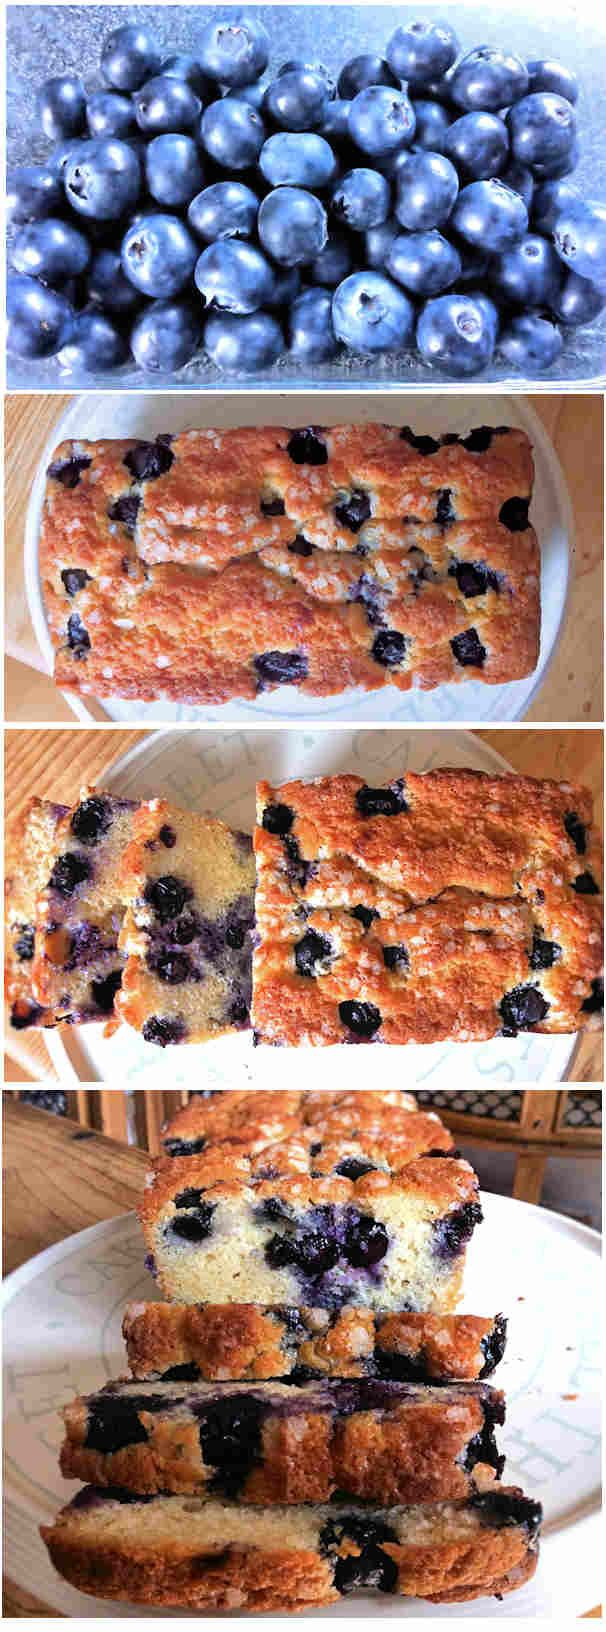 Mascarpone blueberry cake, rich and velvety with a tangy flavour from the blueberries.